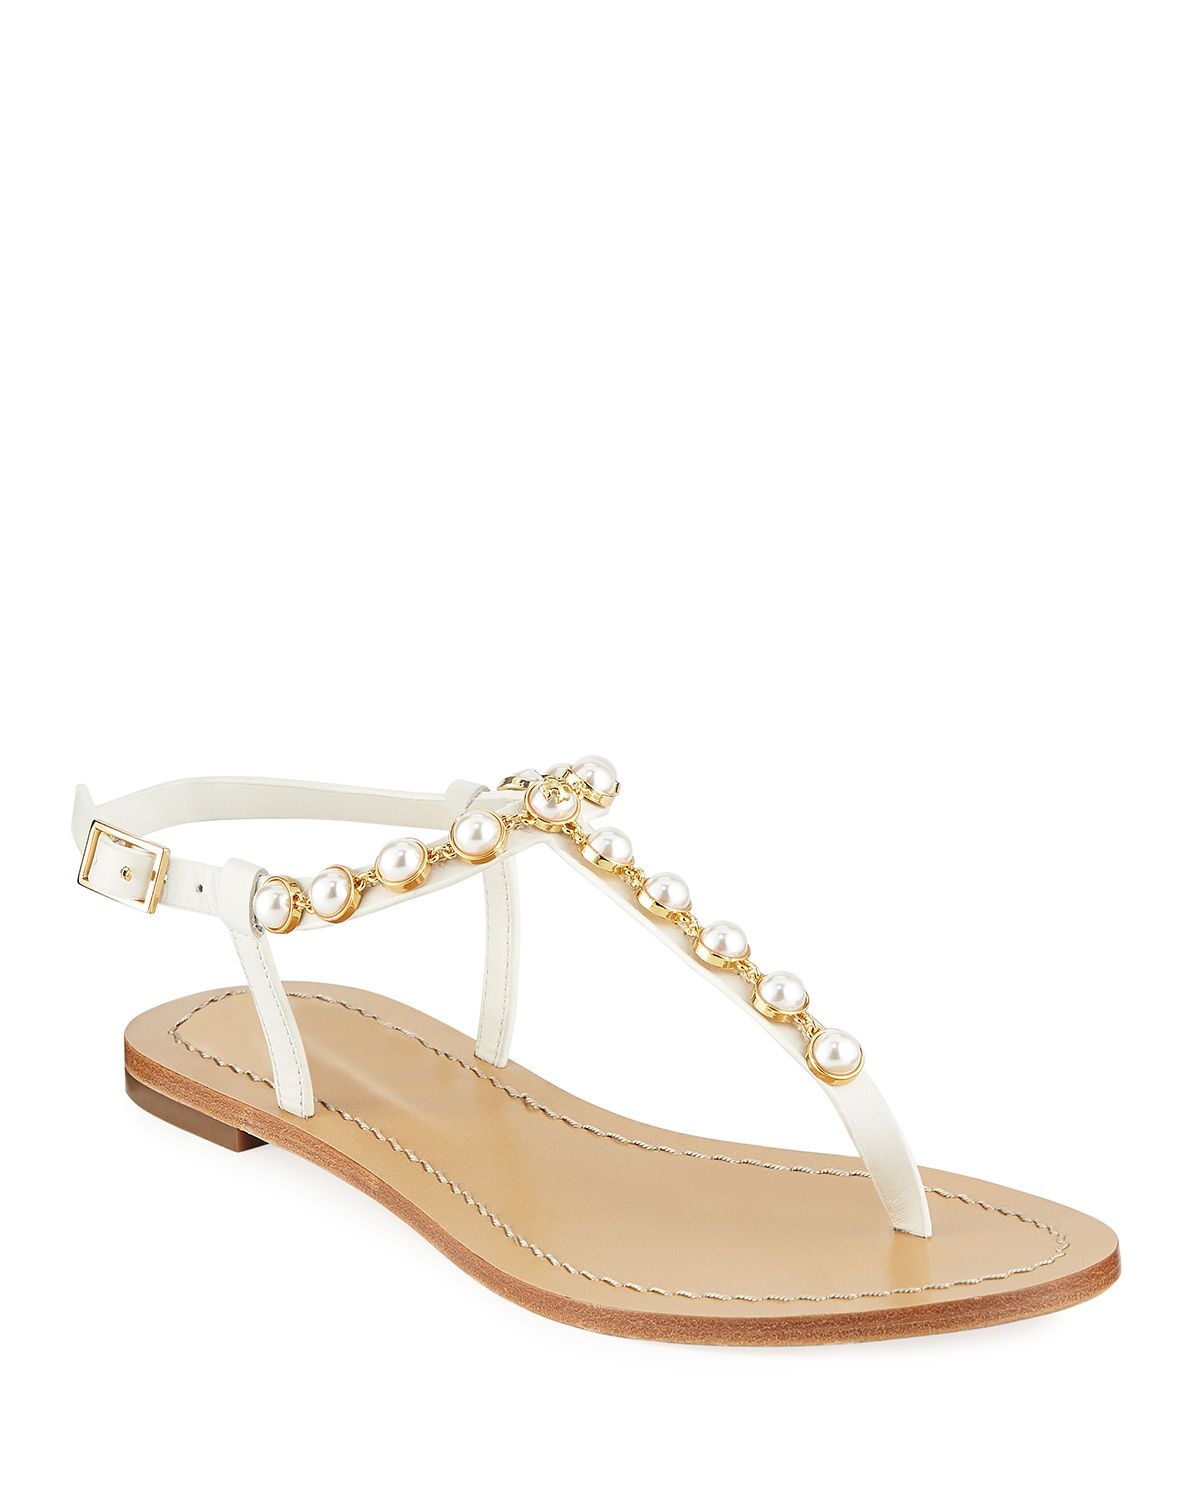 493257770c Emmy Pearly Beaded Flat Sandals Tory Burch Emmy Pearly Beaded Flat Sandals  Pearl Sandals, Flat